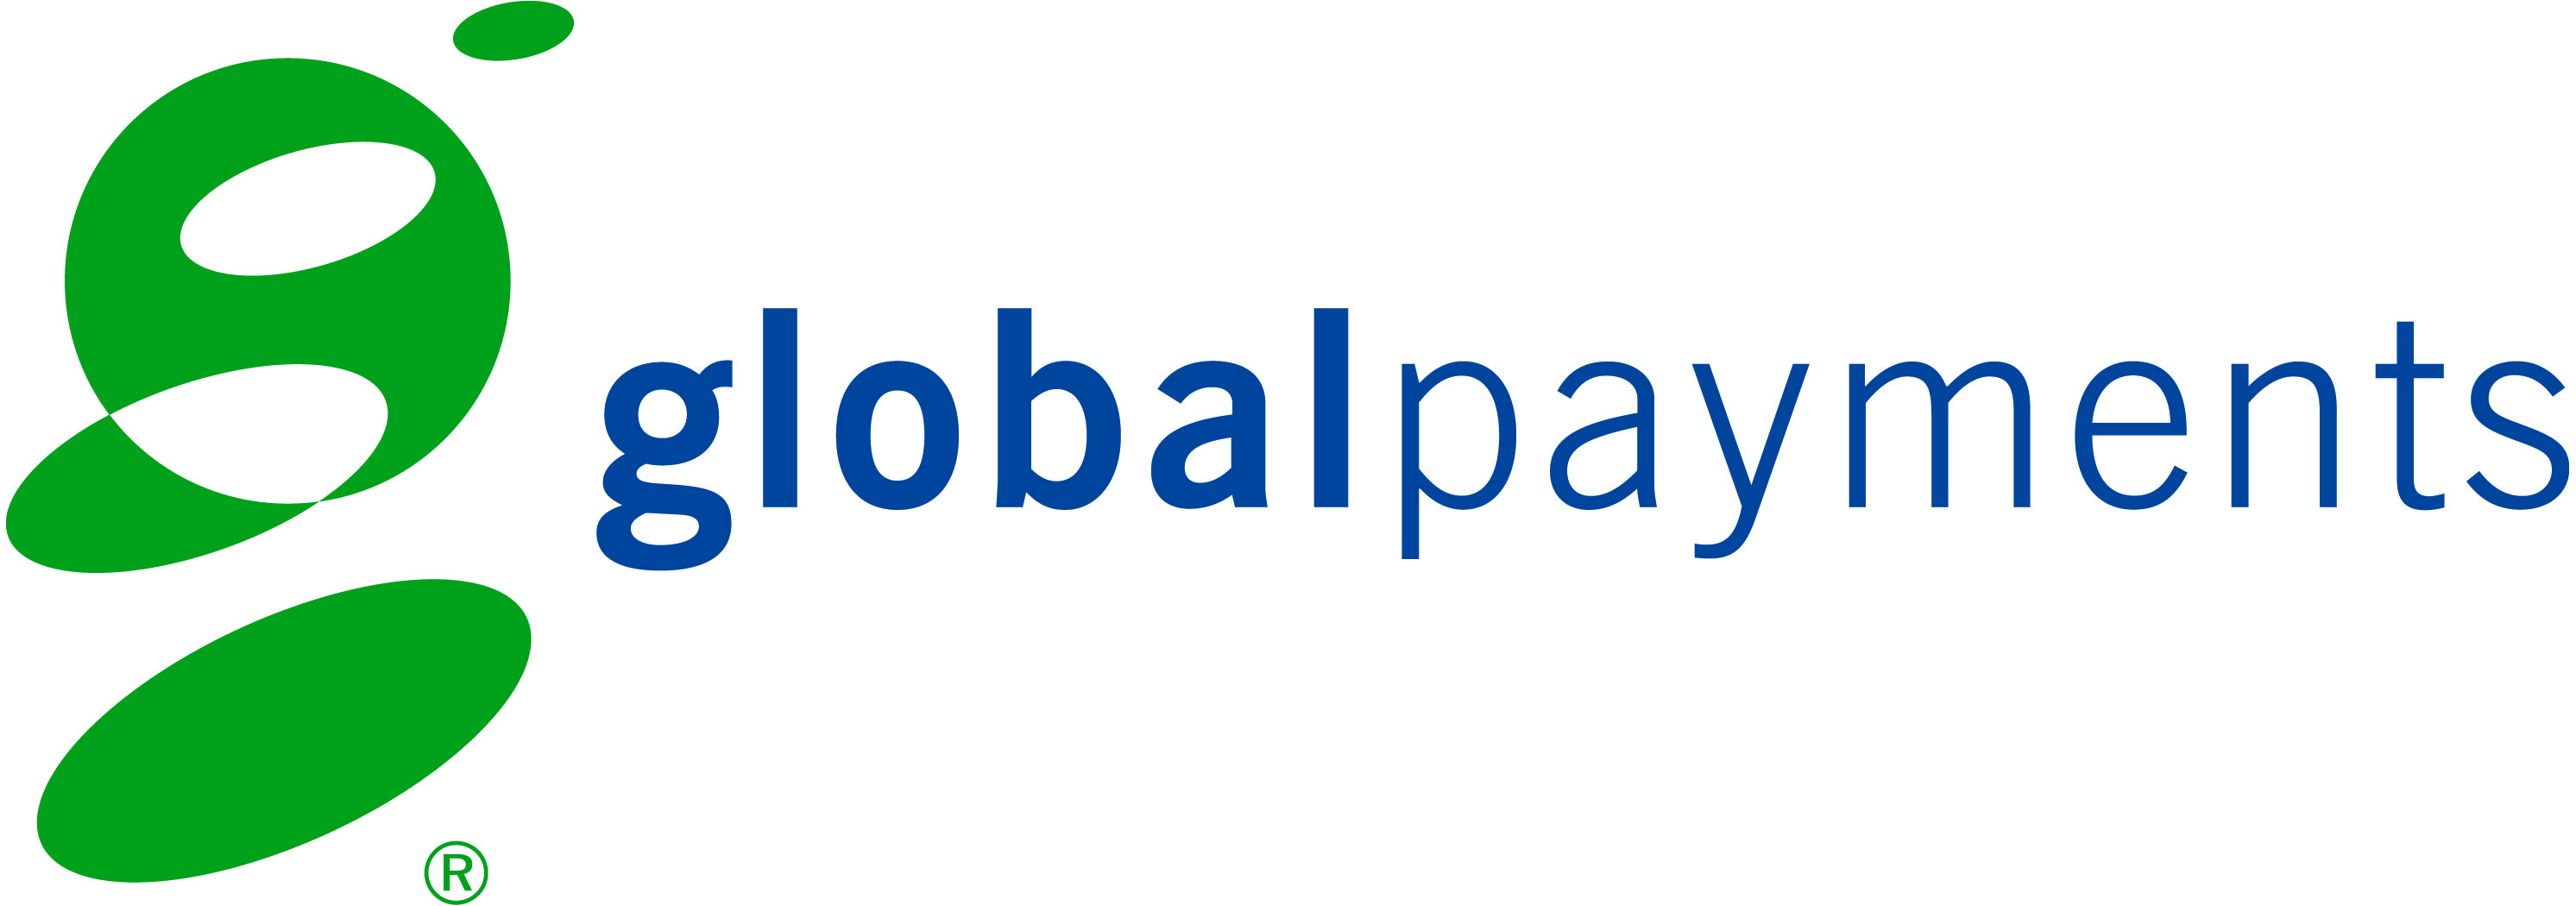 Global Payments Promotion